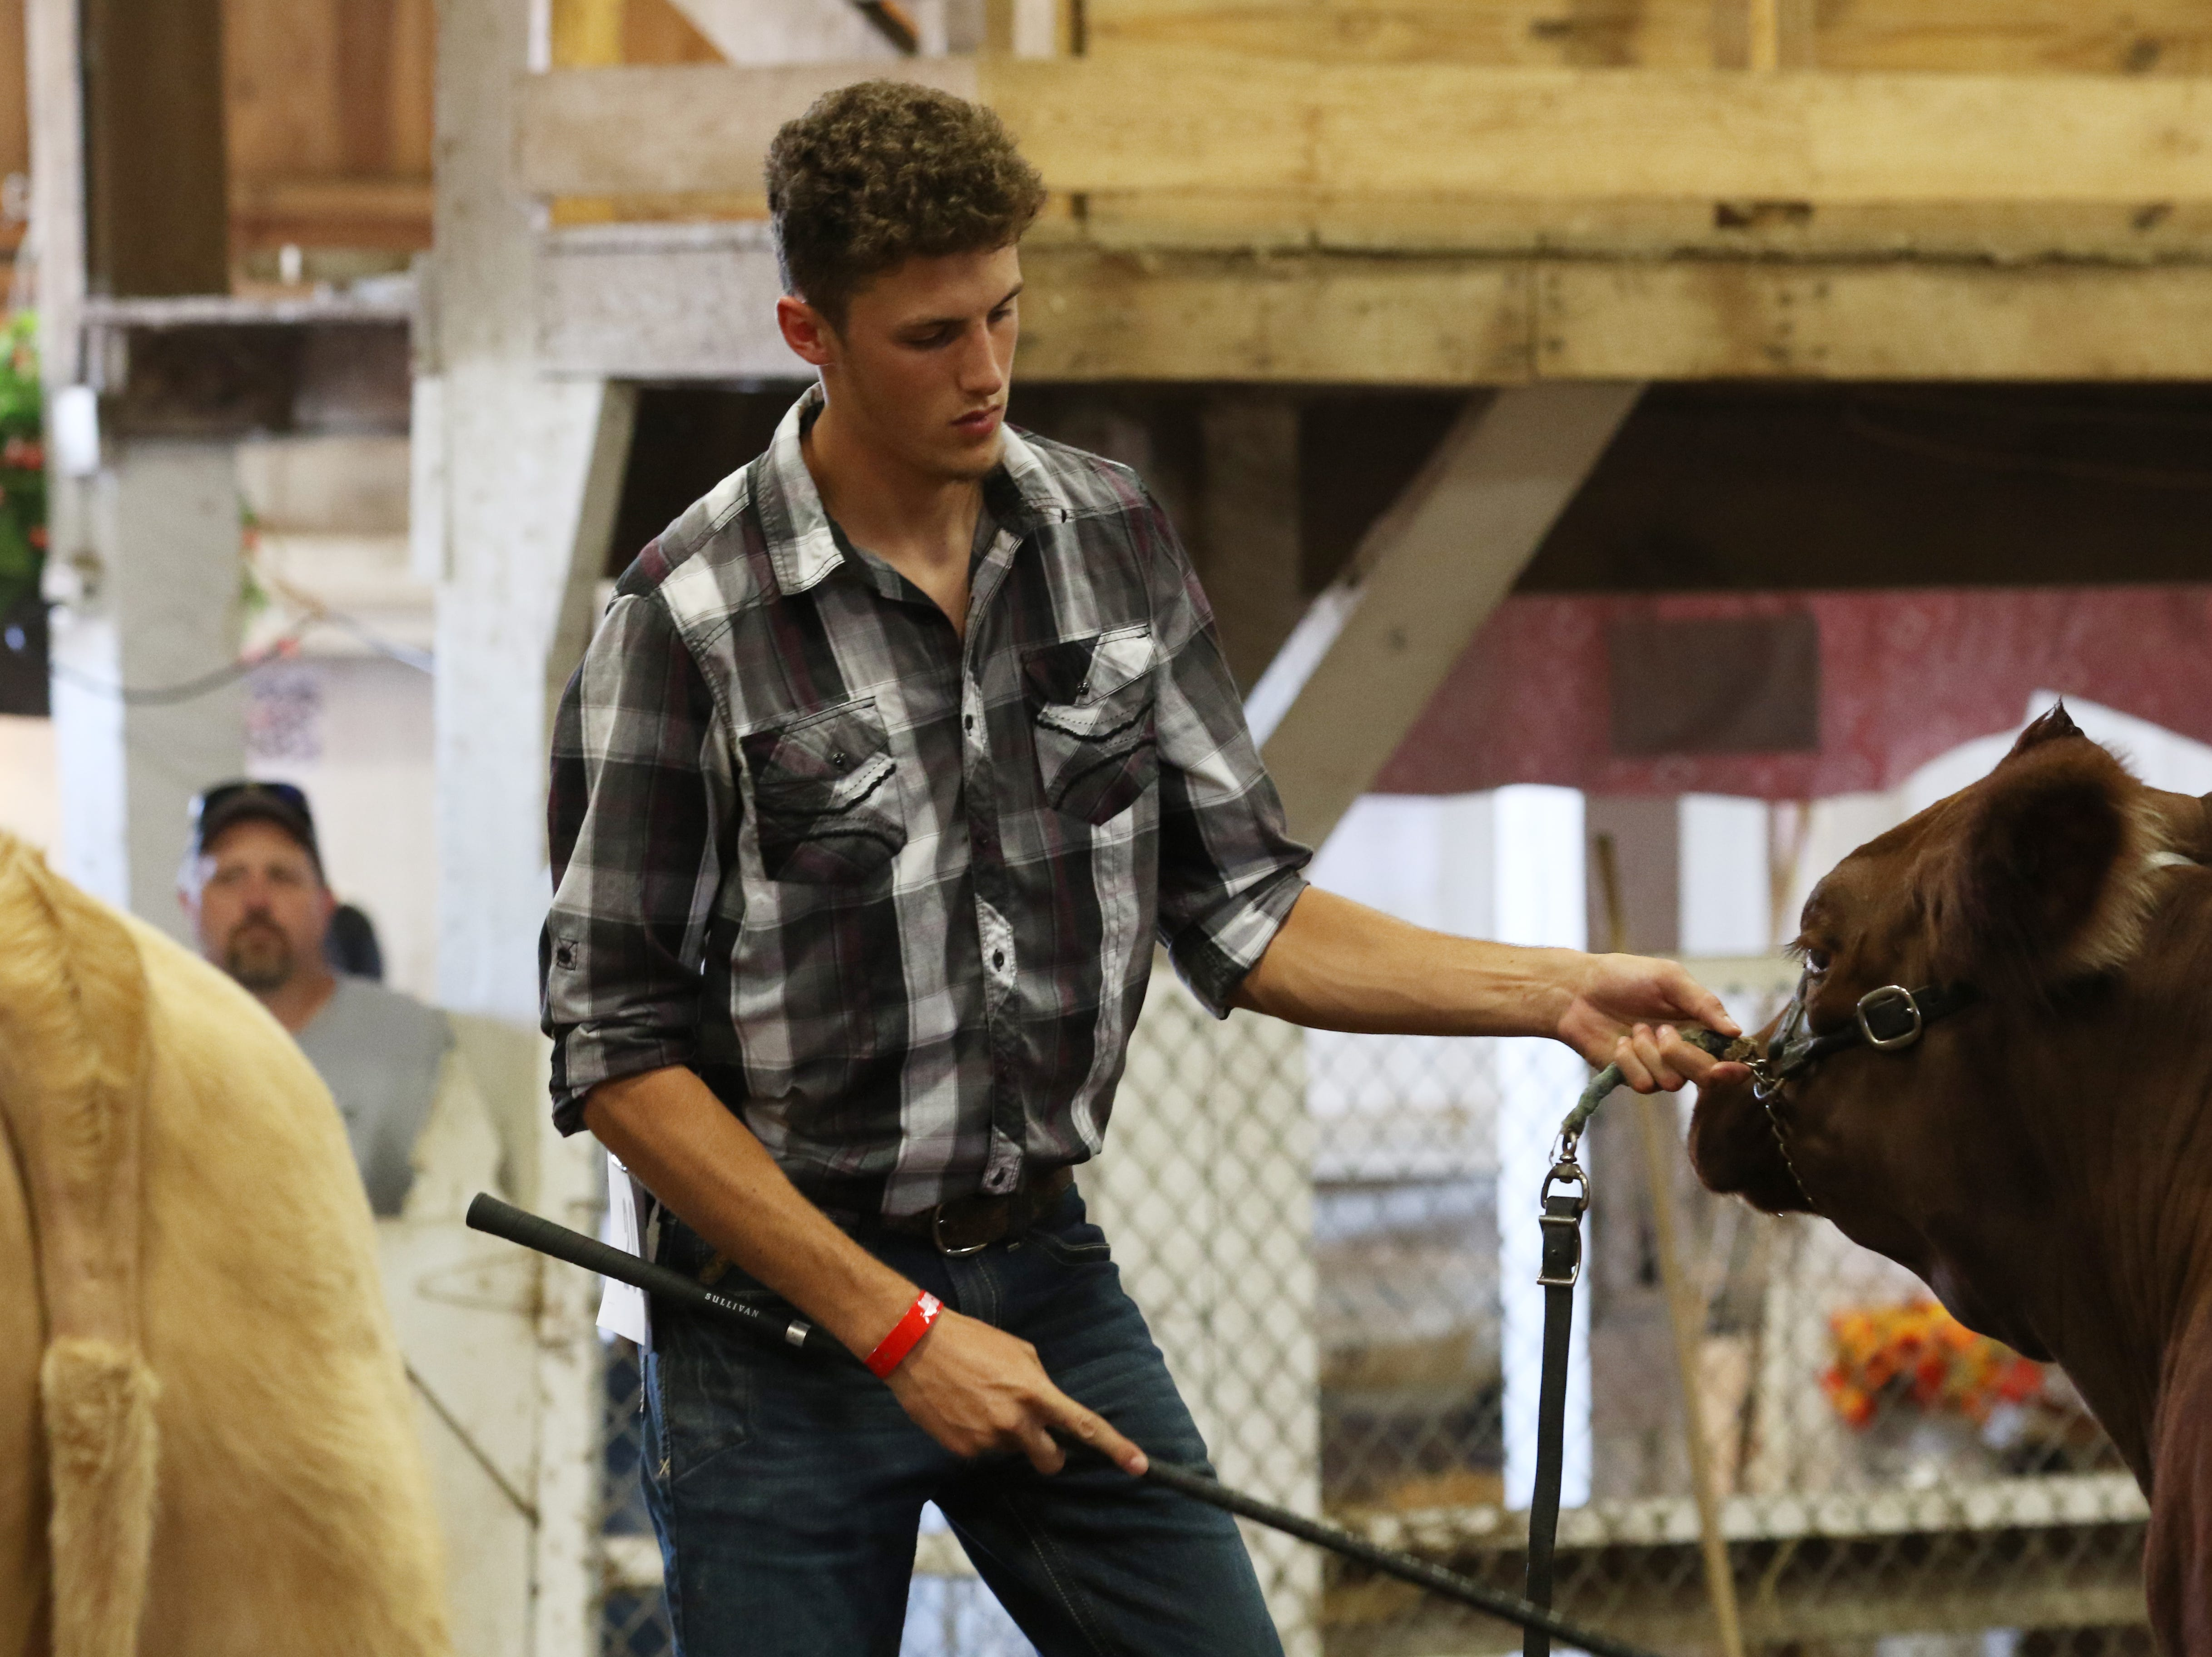 Junior Fair Steer judging at the Muskingum County Fair on Tuesday.